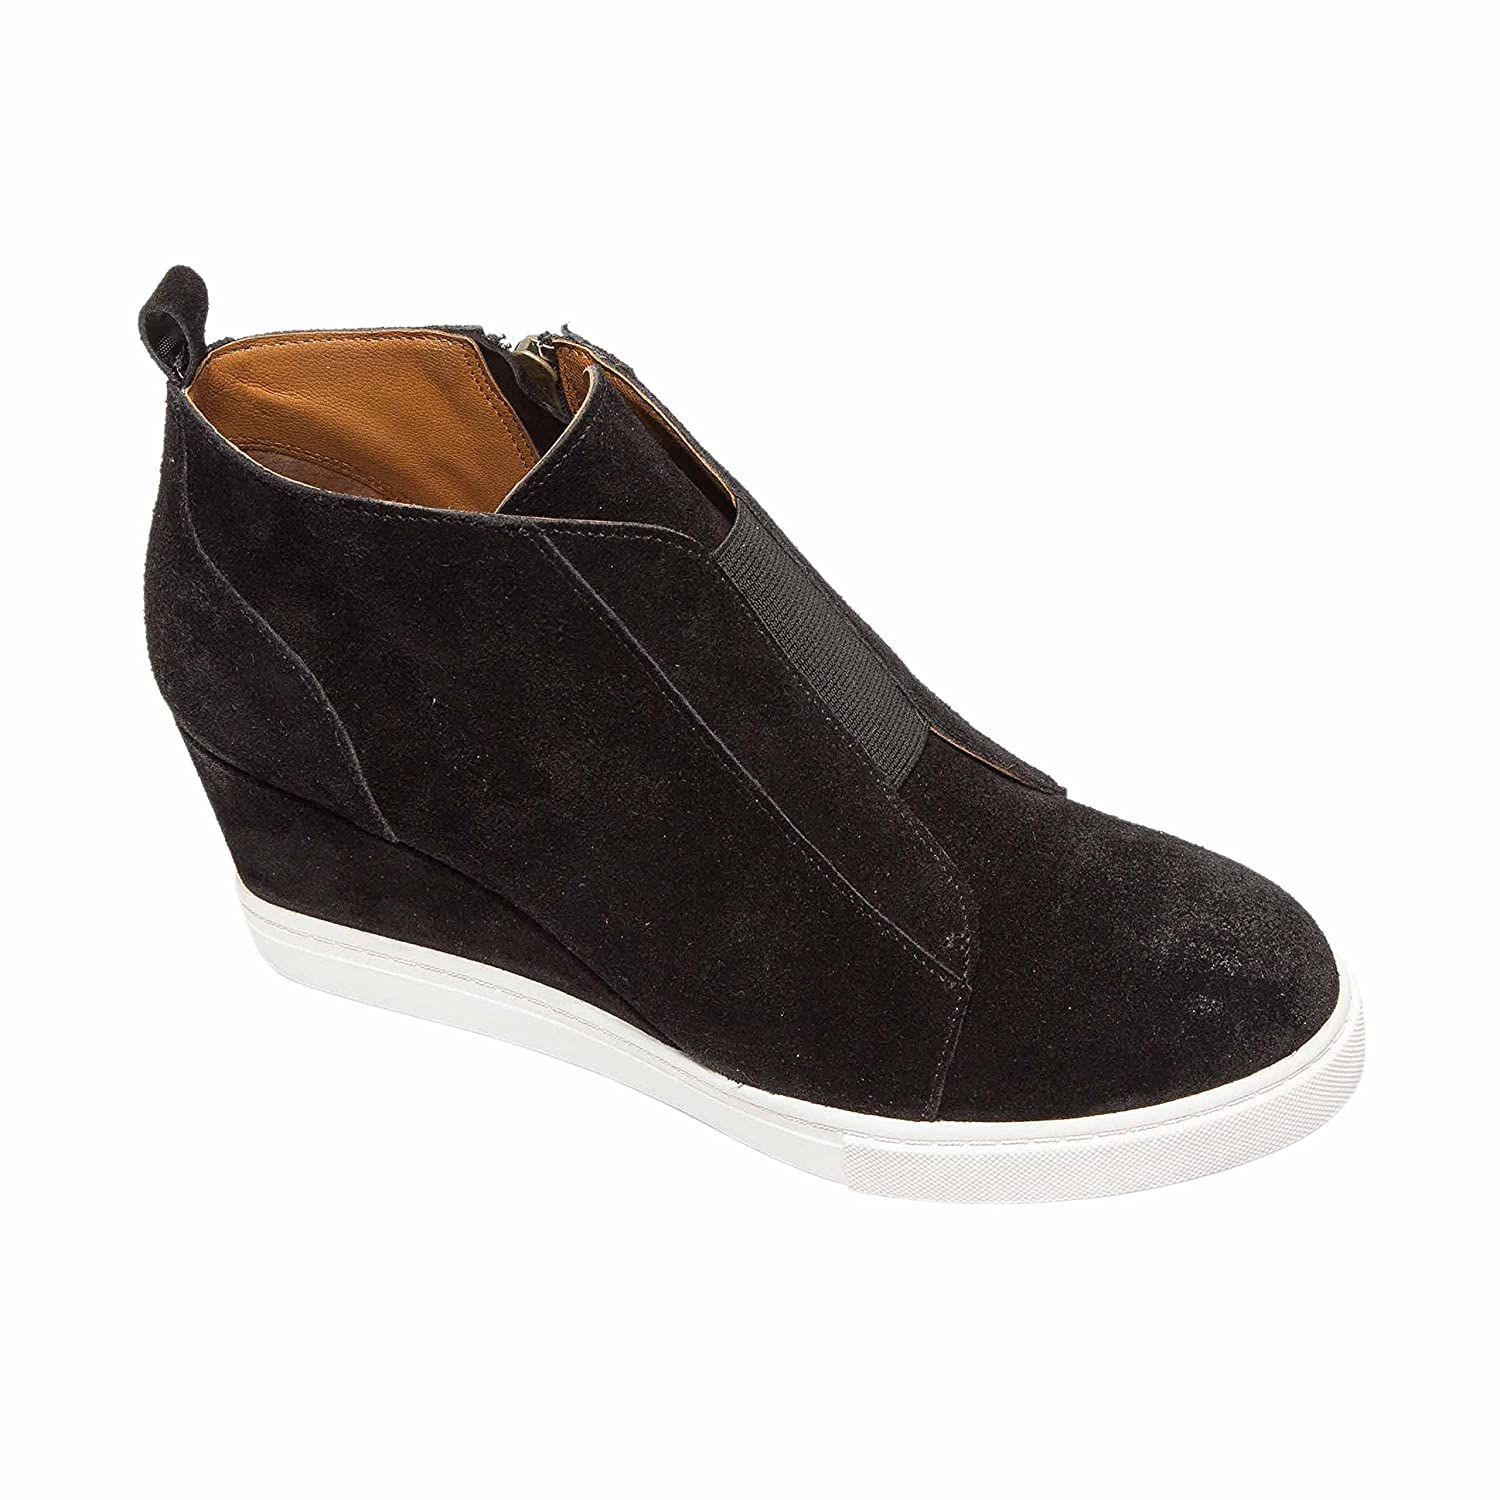 Felicia | Women's Platform Wedge Bootie Sneaker Leather Or Suede B07FSLSPW9 13 M US|Black Suede Embroidery